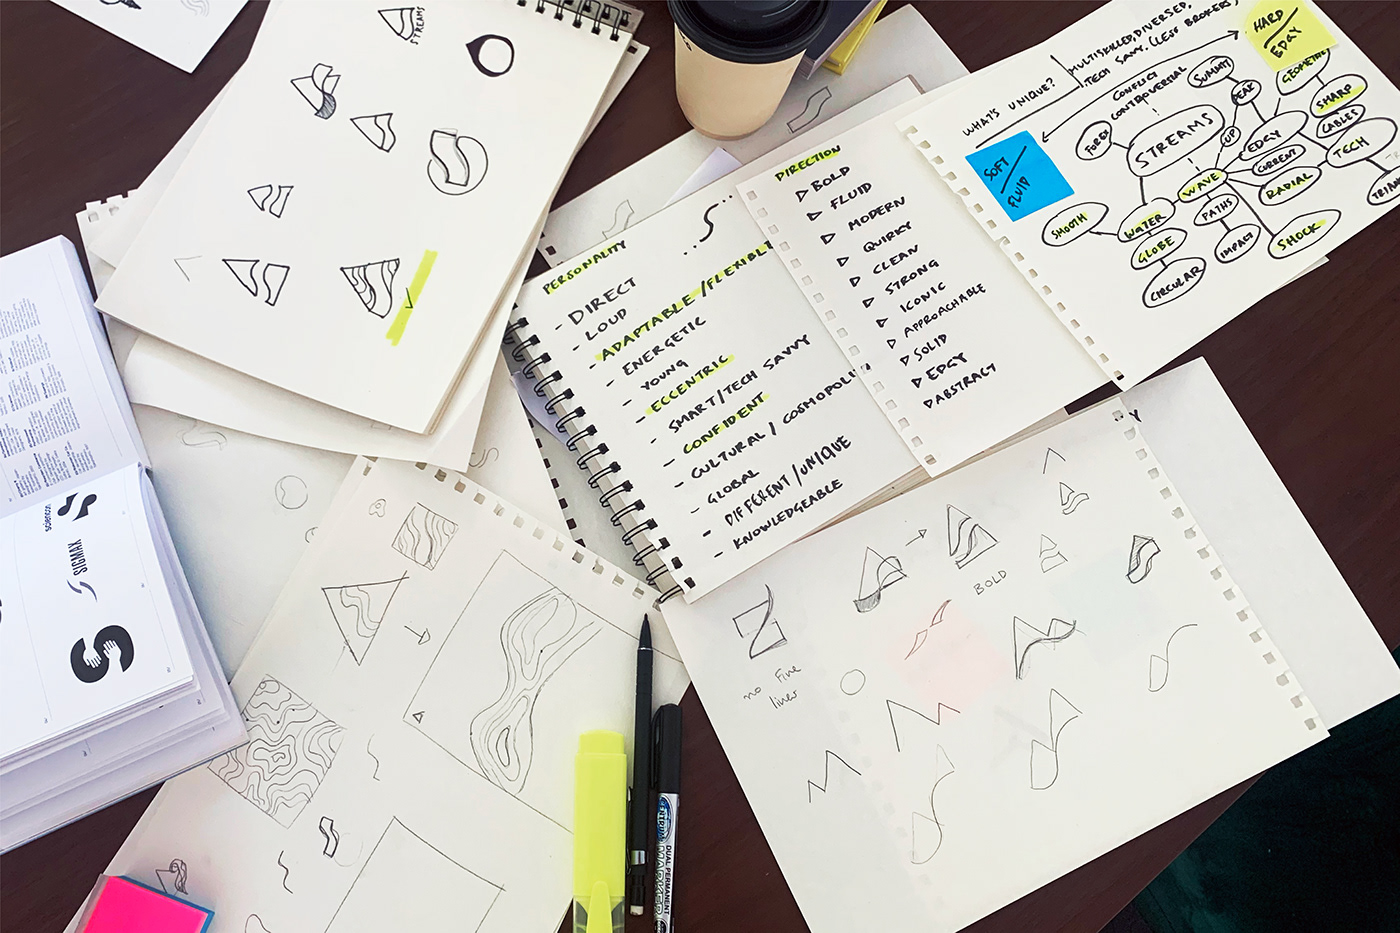 Brand Strategy workshop. Logo Design, sketches, identifying the personality and direction.